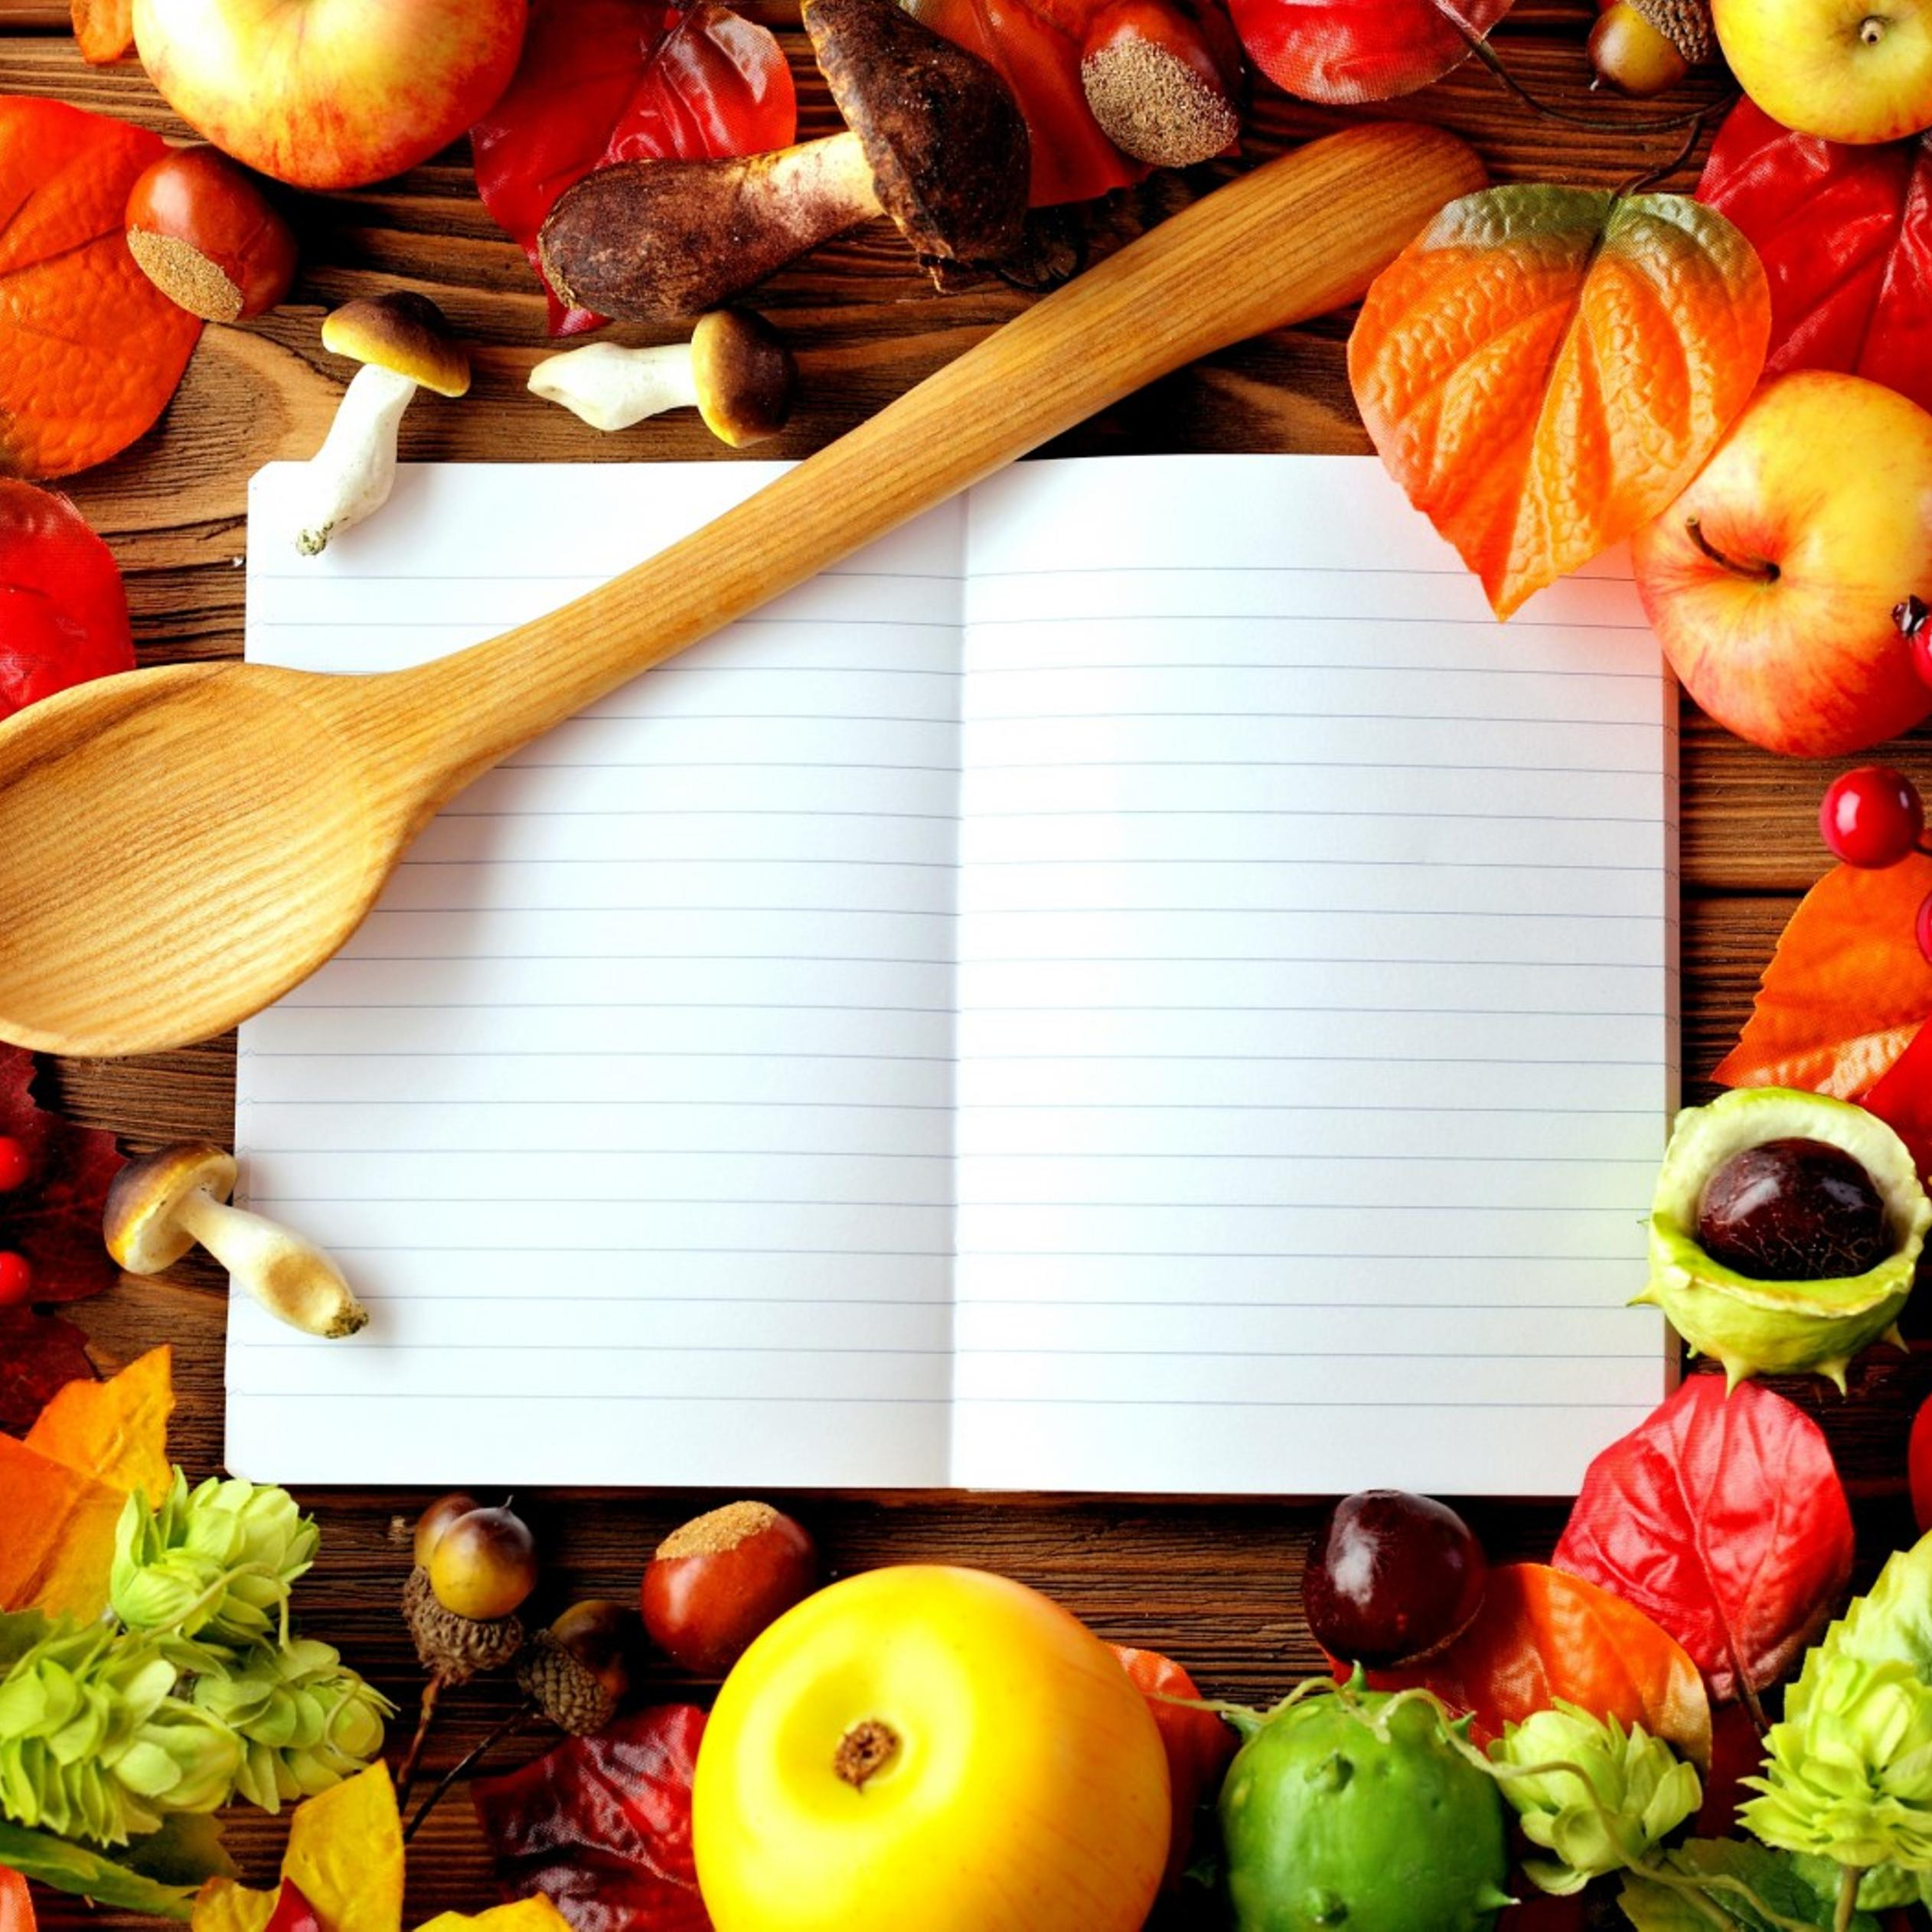 Your secret book with food recipes wallpaper download 2524x2524 forumfinder Image collections